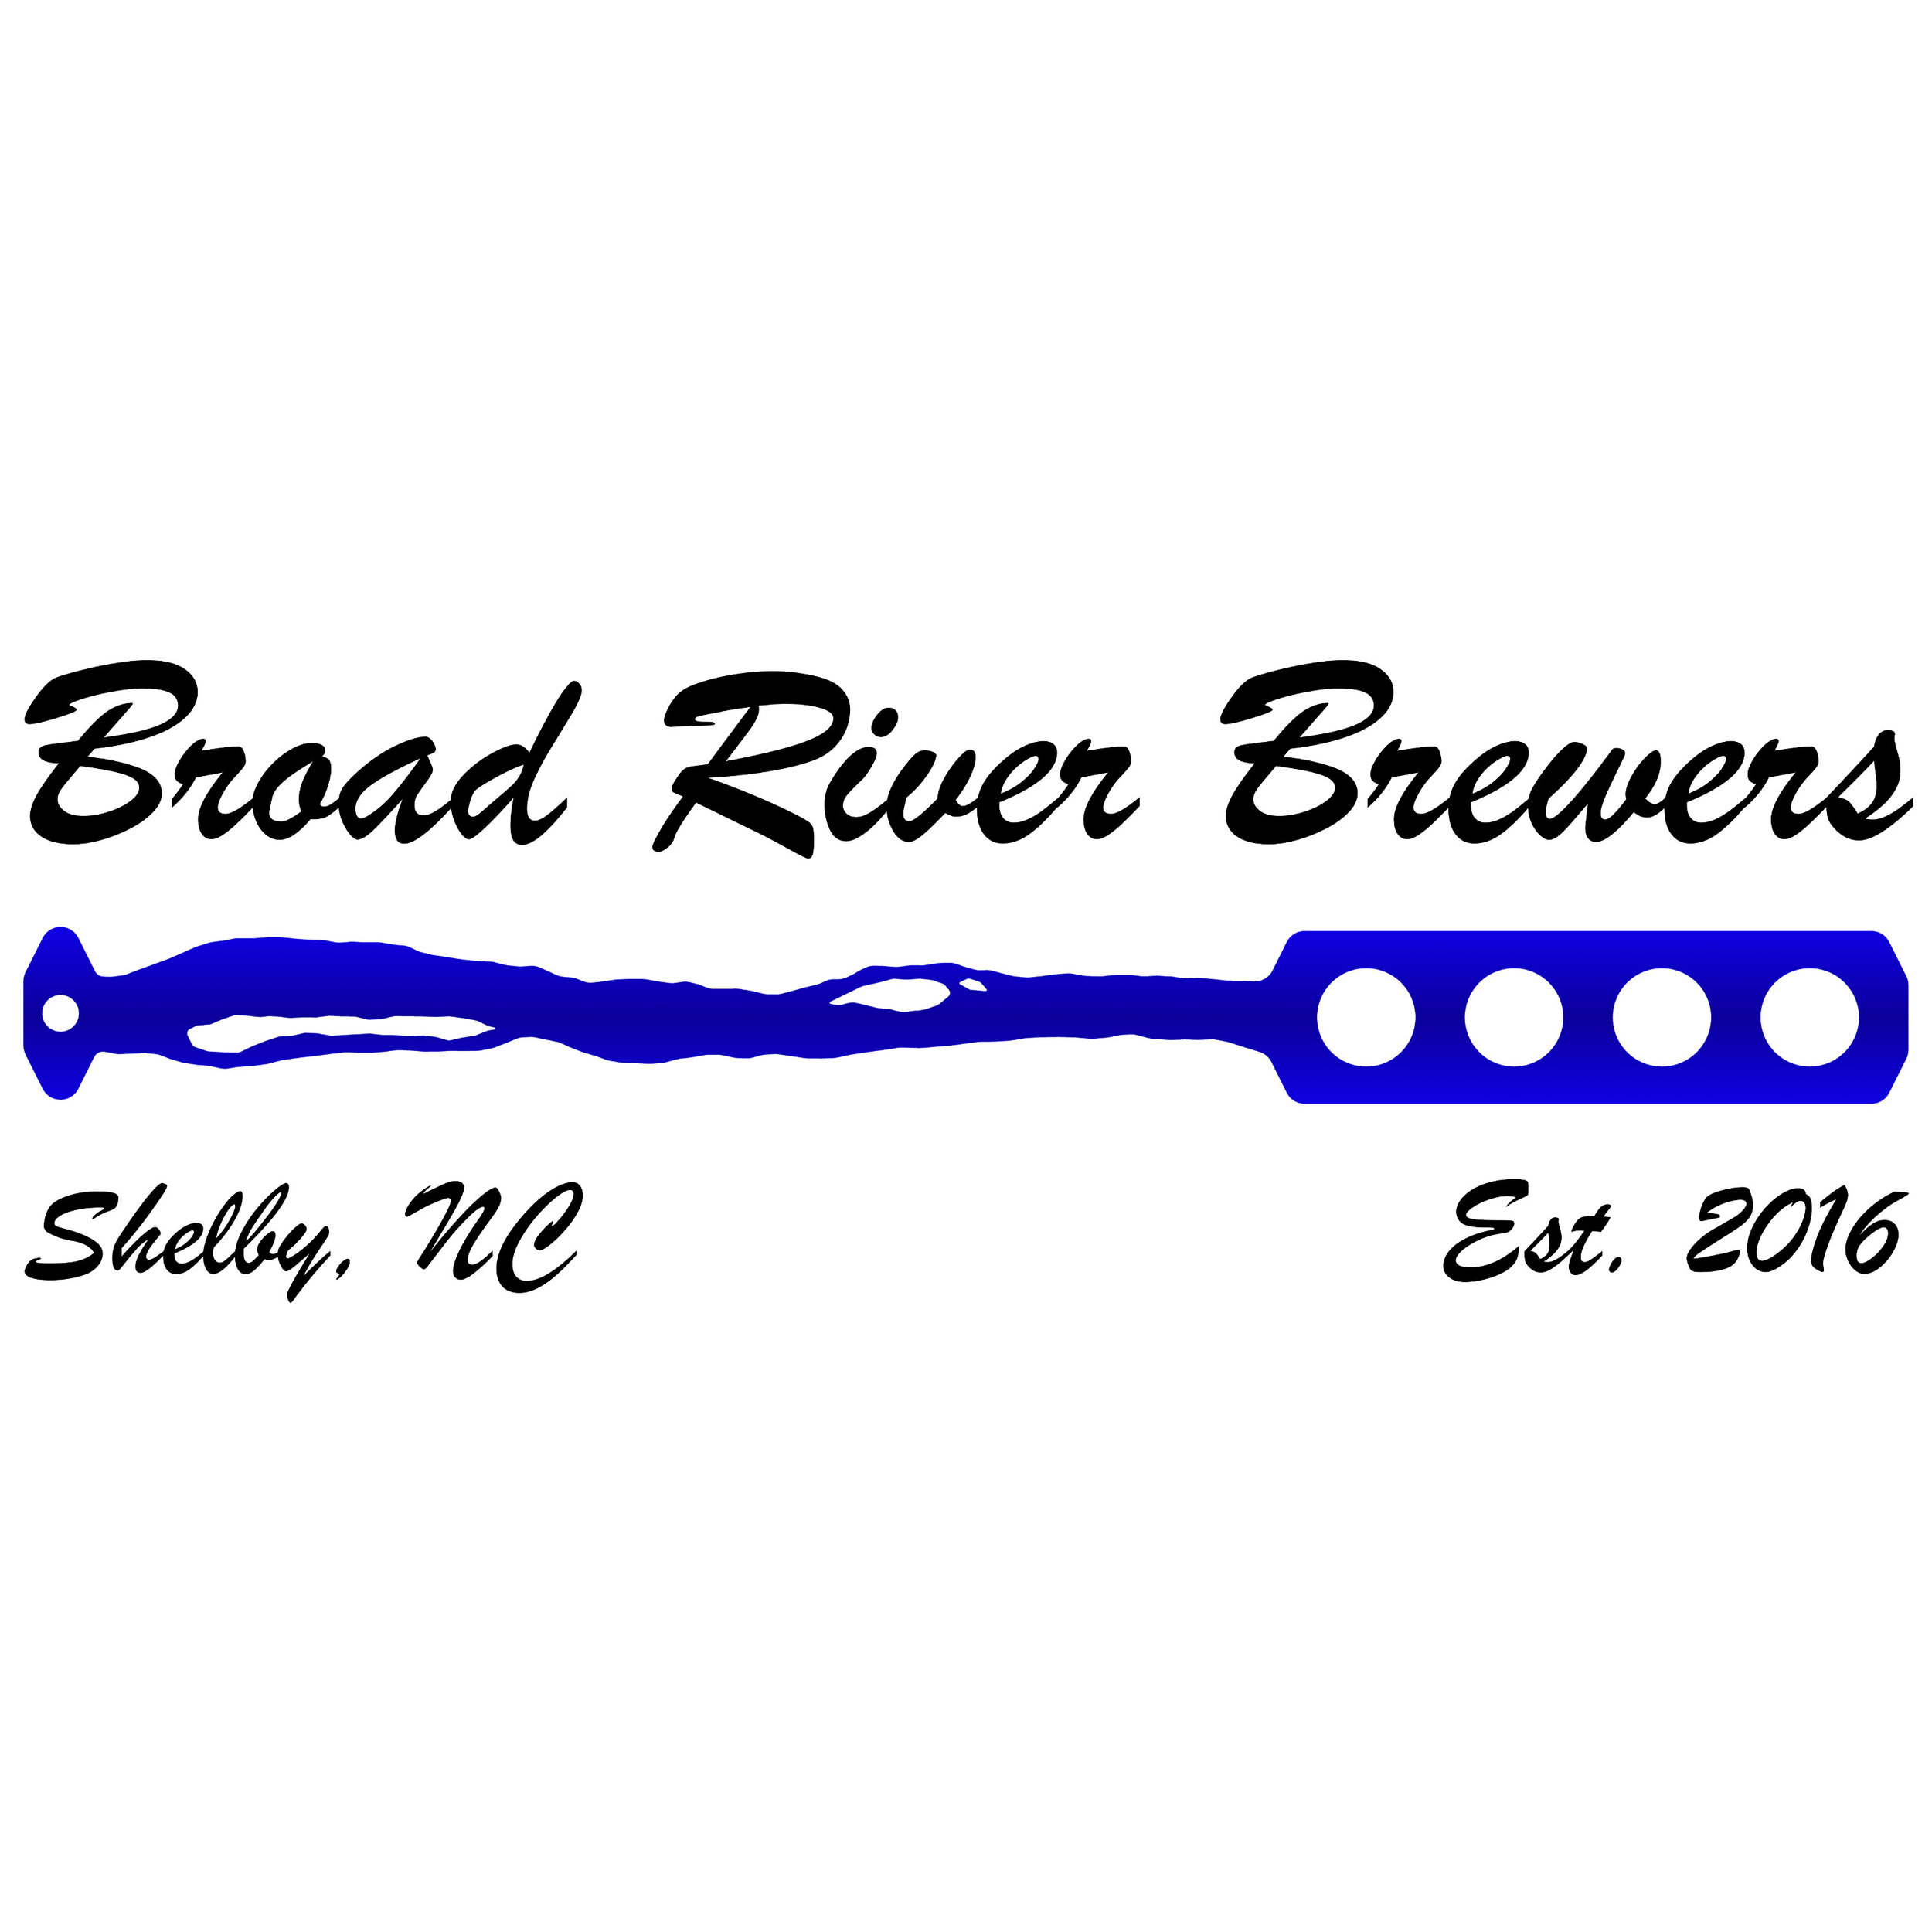 Shelby     Broad River Brewers